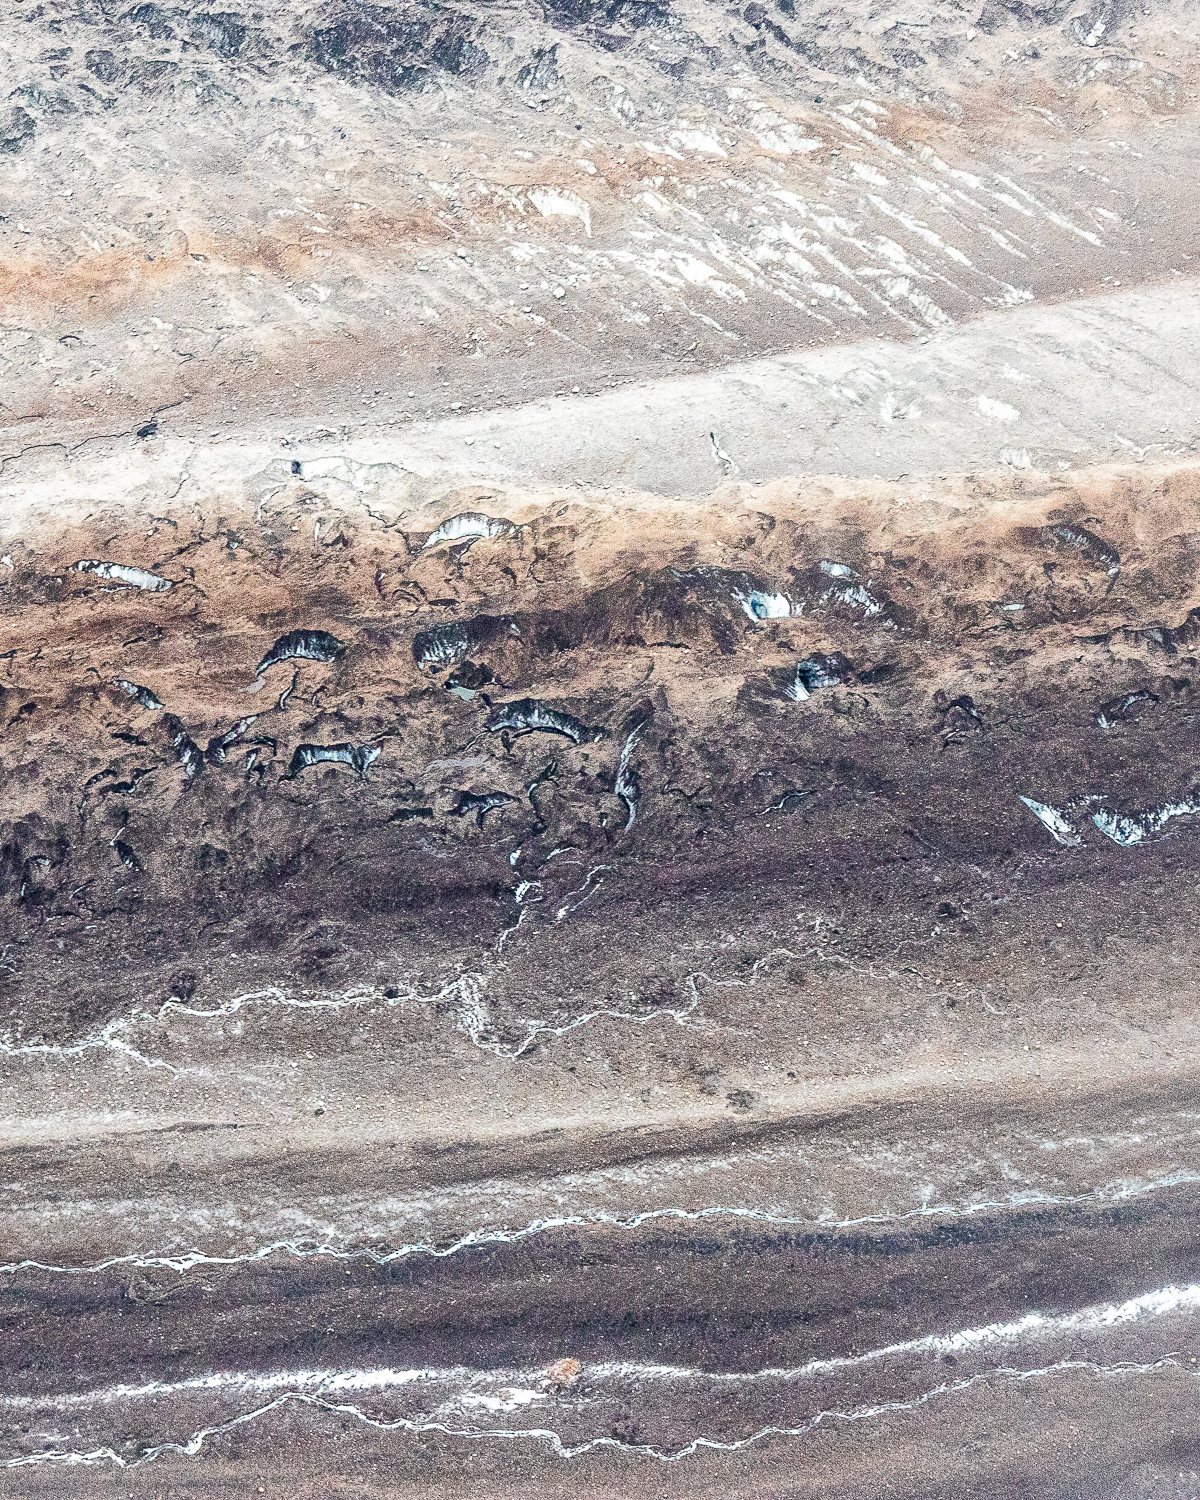 A zoom-in of the photo above, showing some detail of the ice and glacial moraine.